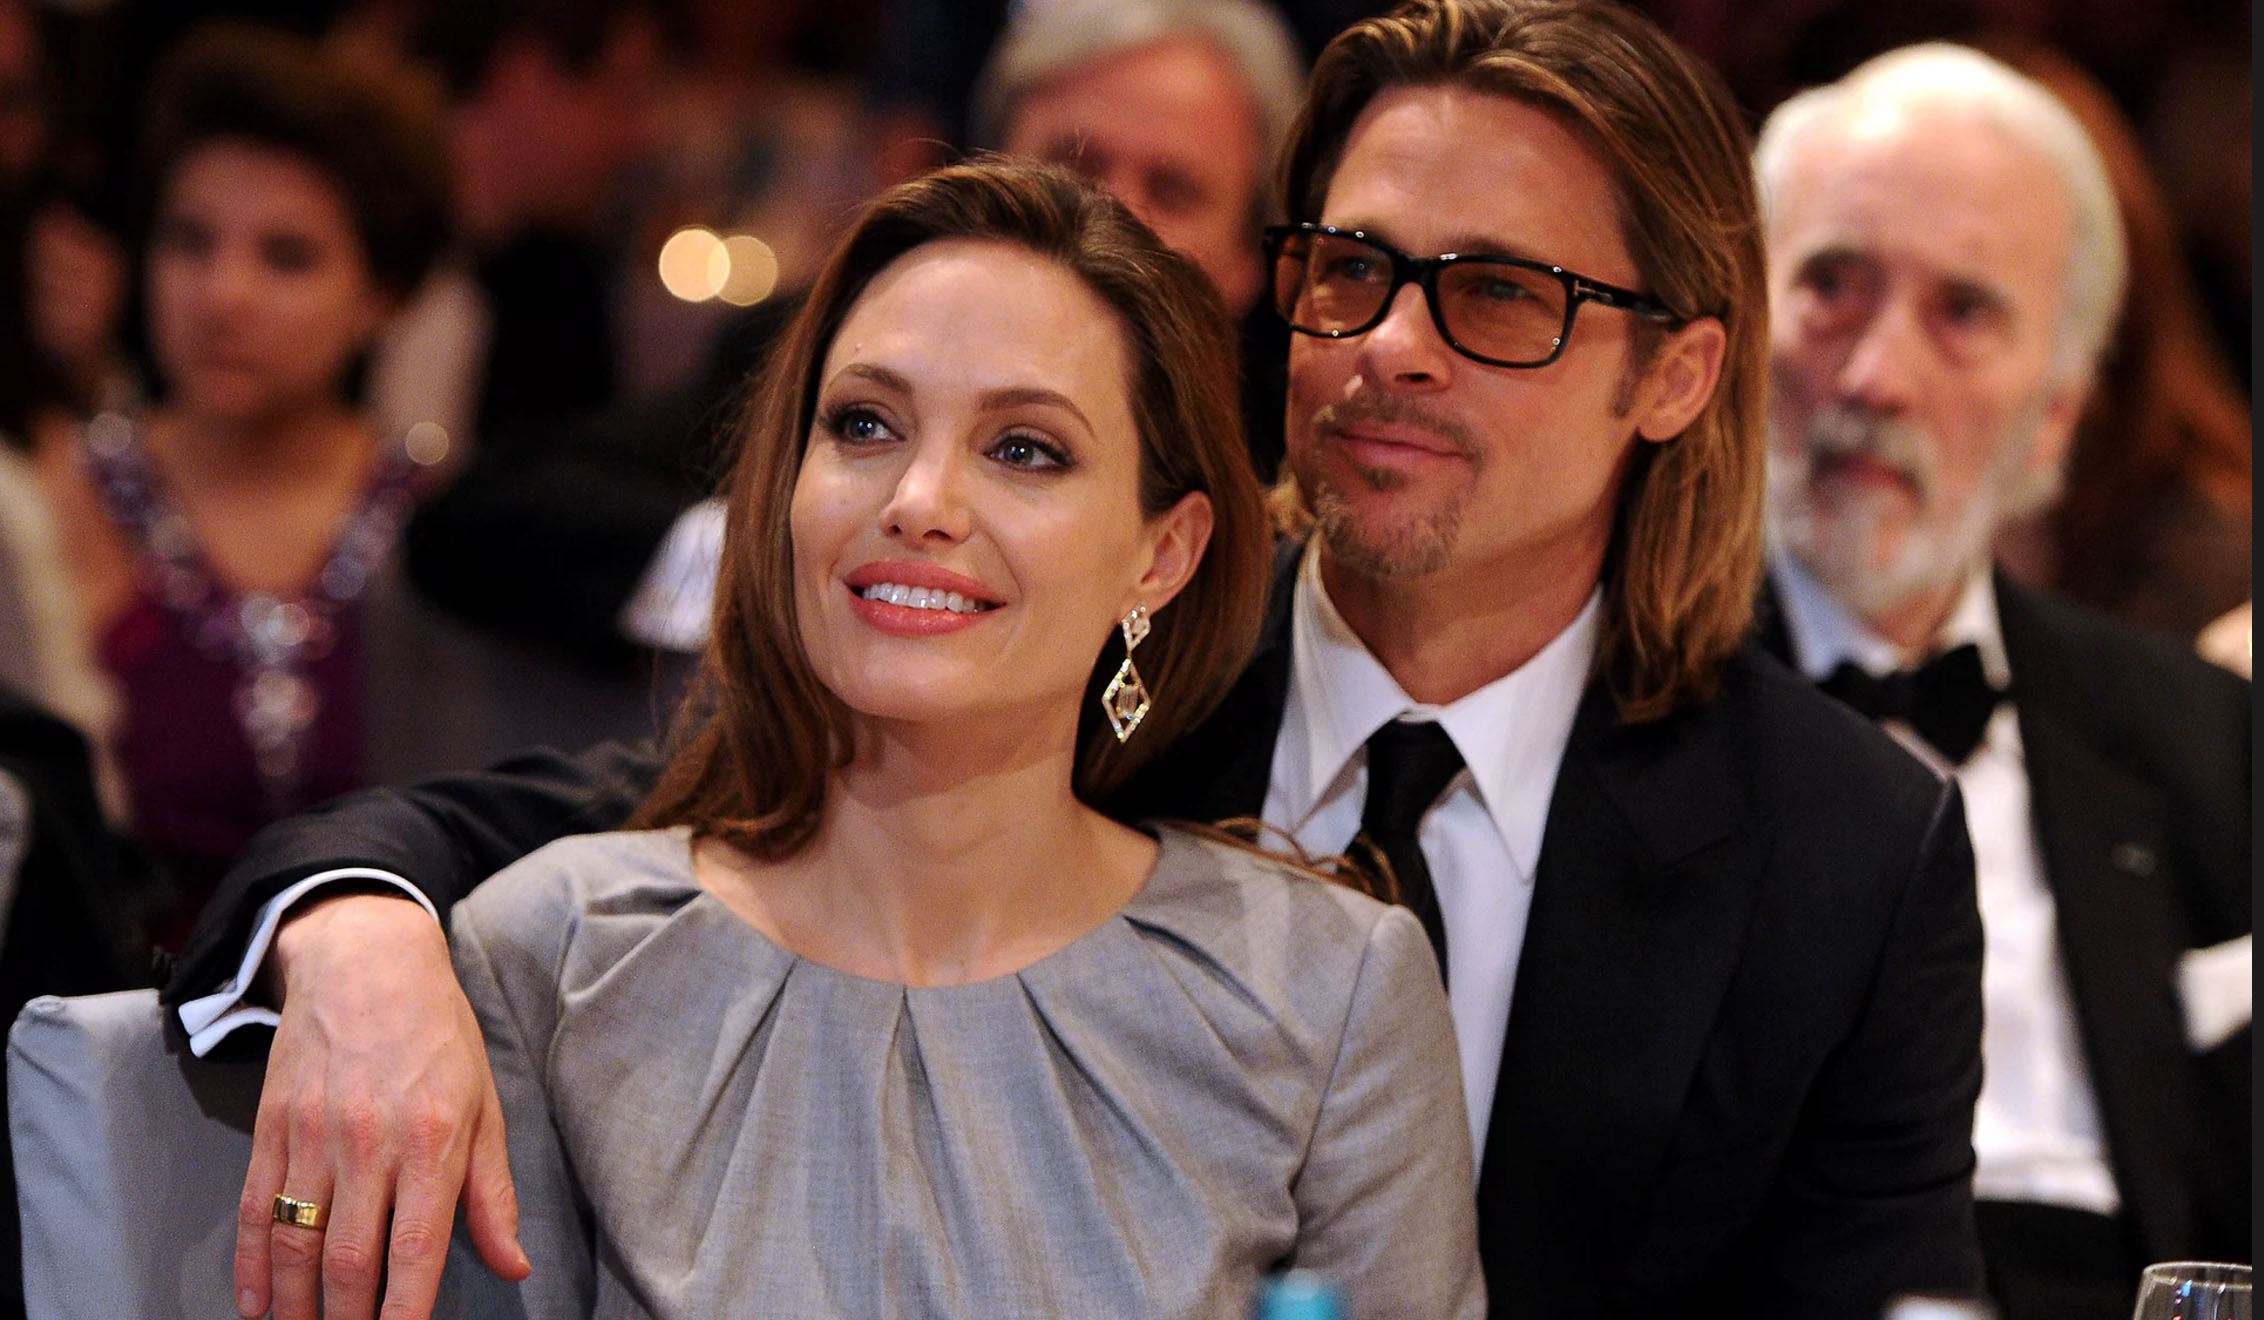 Theories Abound That Marijuana is Partly to Blame For Brangelina Divorce